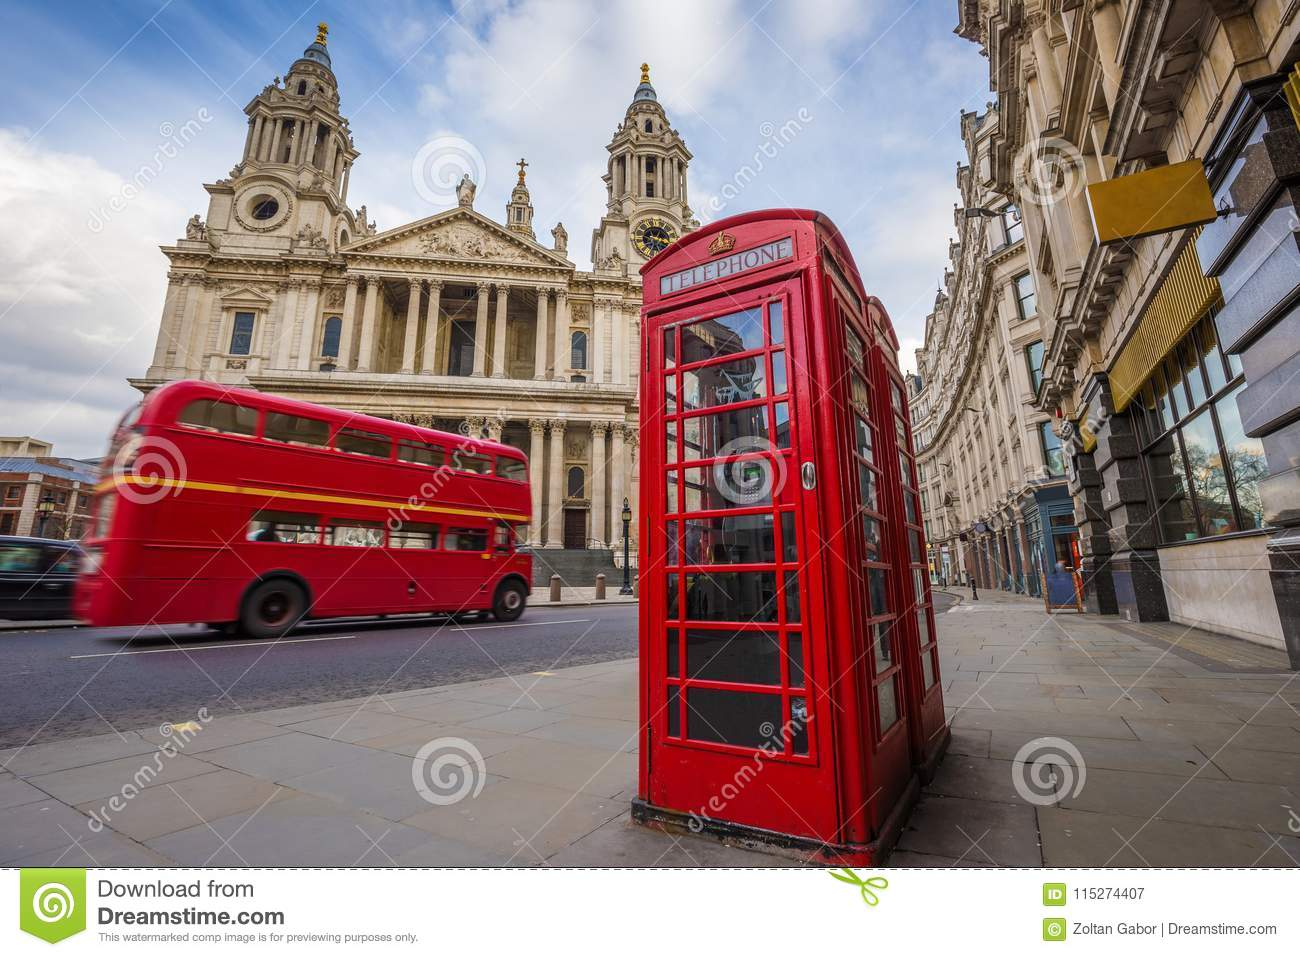 London, England - Traditional red telephone box with iconic red vintage double-decker bus on the move